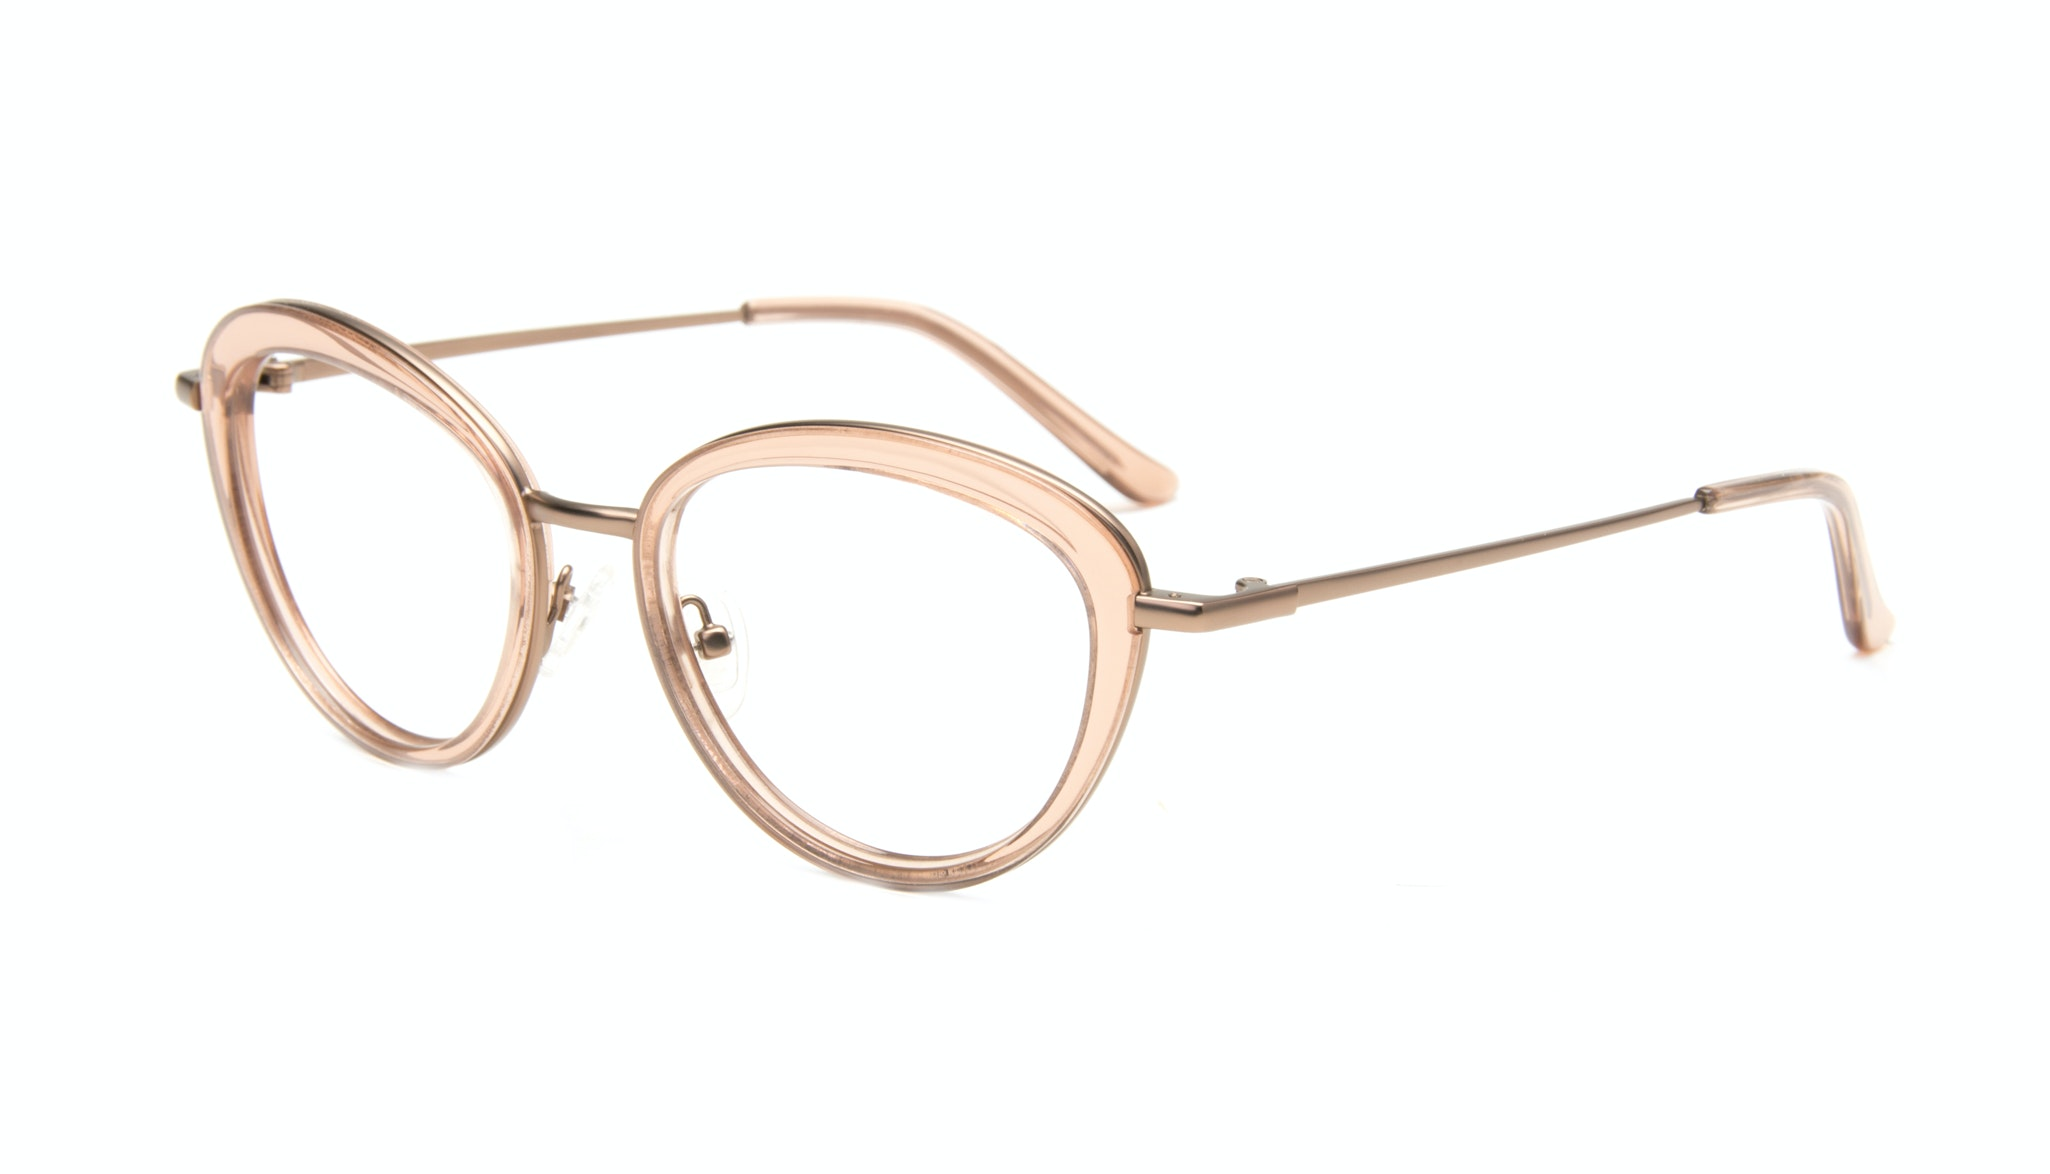 Affordable Fashion Glasses Cat Eye Eyeglasses Women Glory Rose Tilt